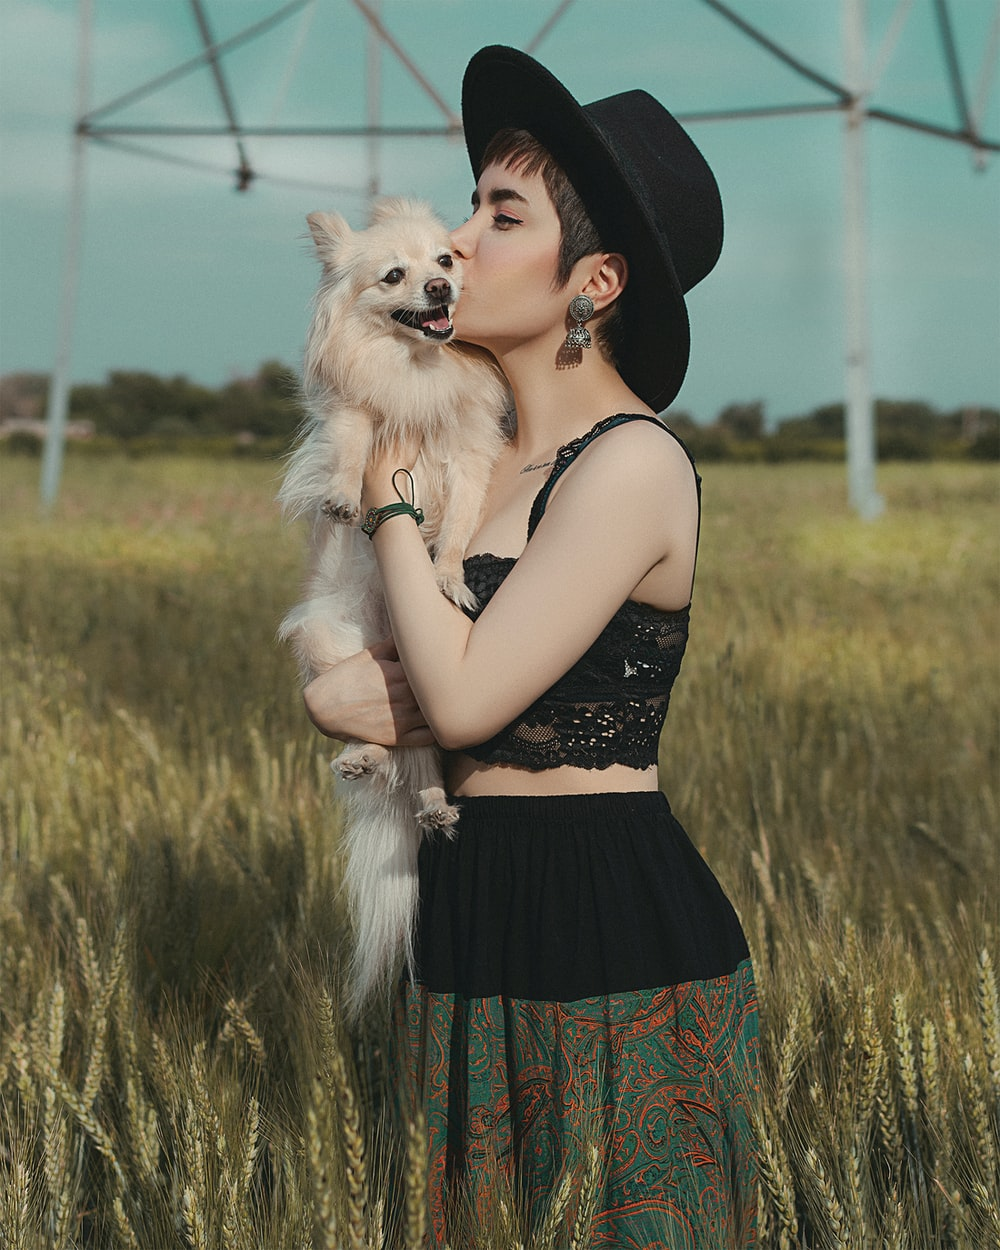 woman in black and red floral dress holding white long coated small dog